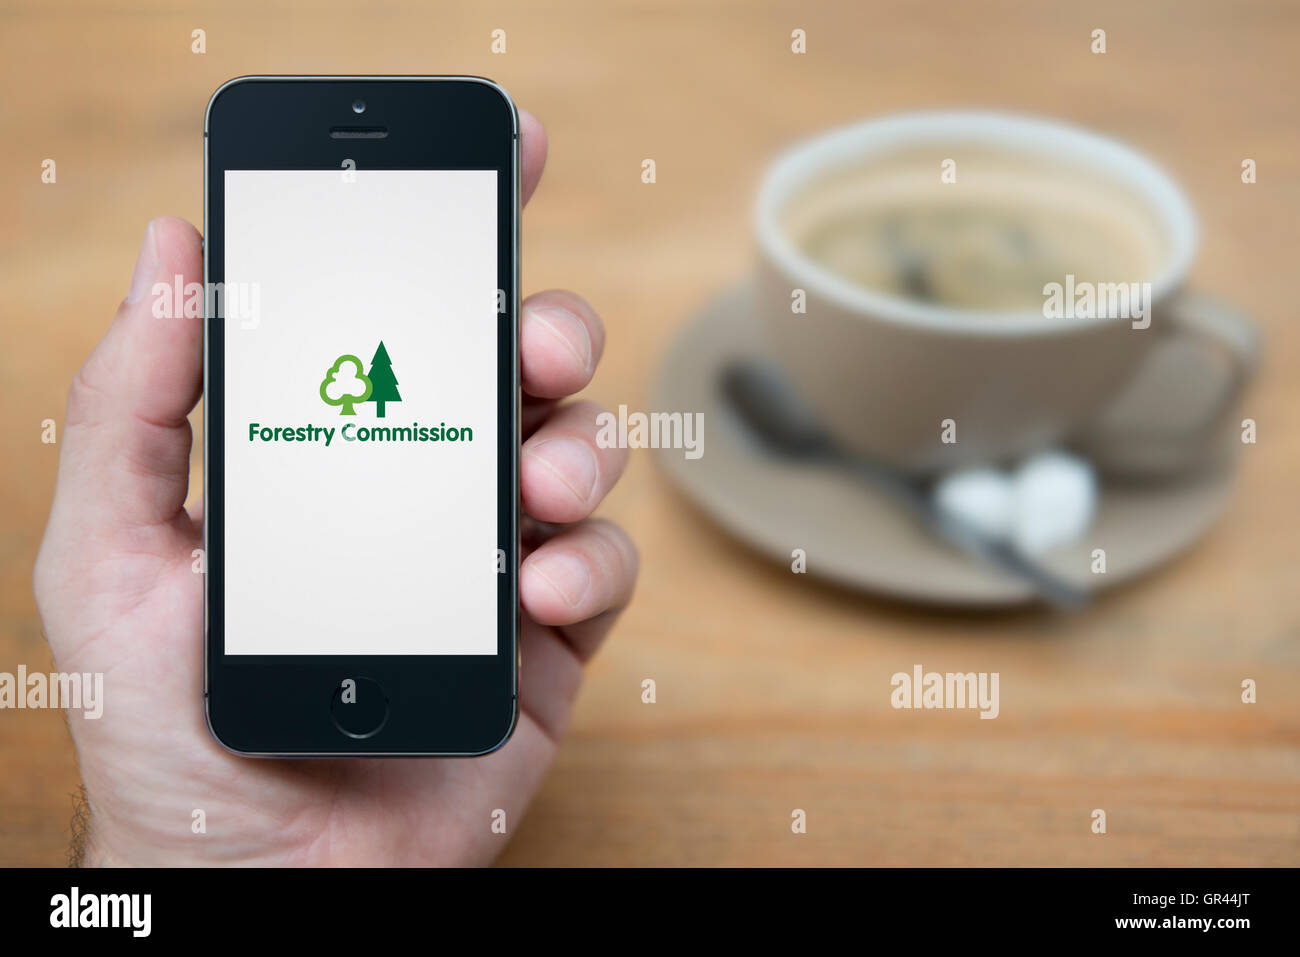 A man looks at his iPhone which displays the UK Government Forestry Commission logo (Editorial use only). - Stock Image